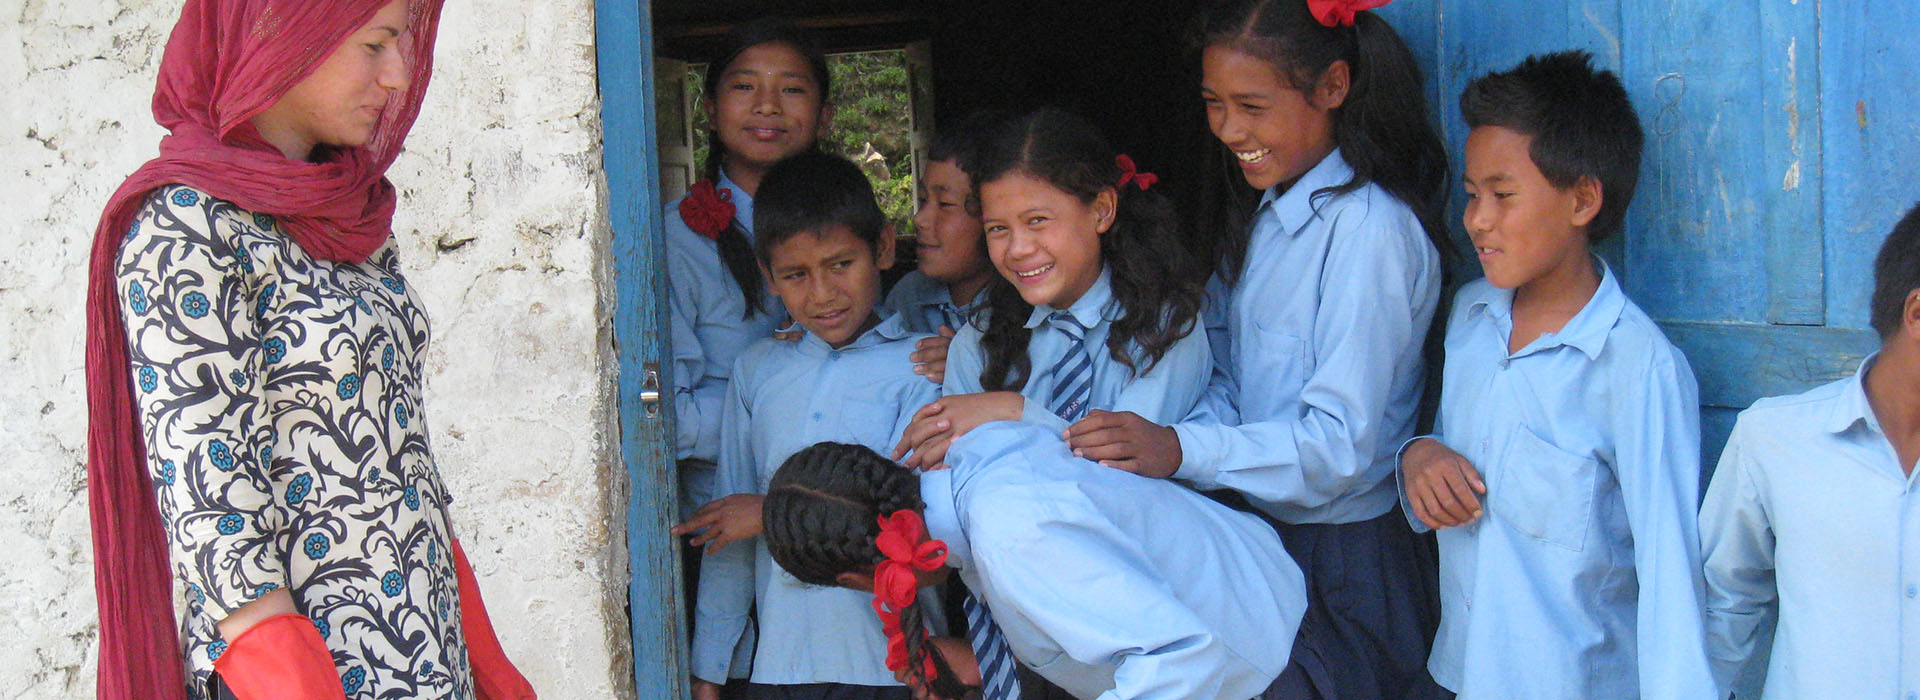 Smiling school-children in South America